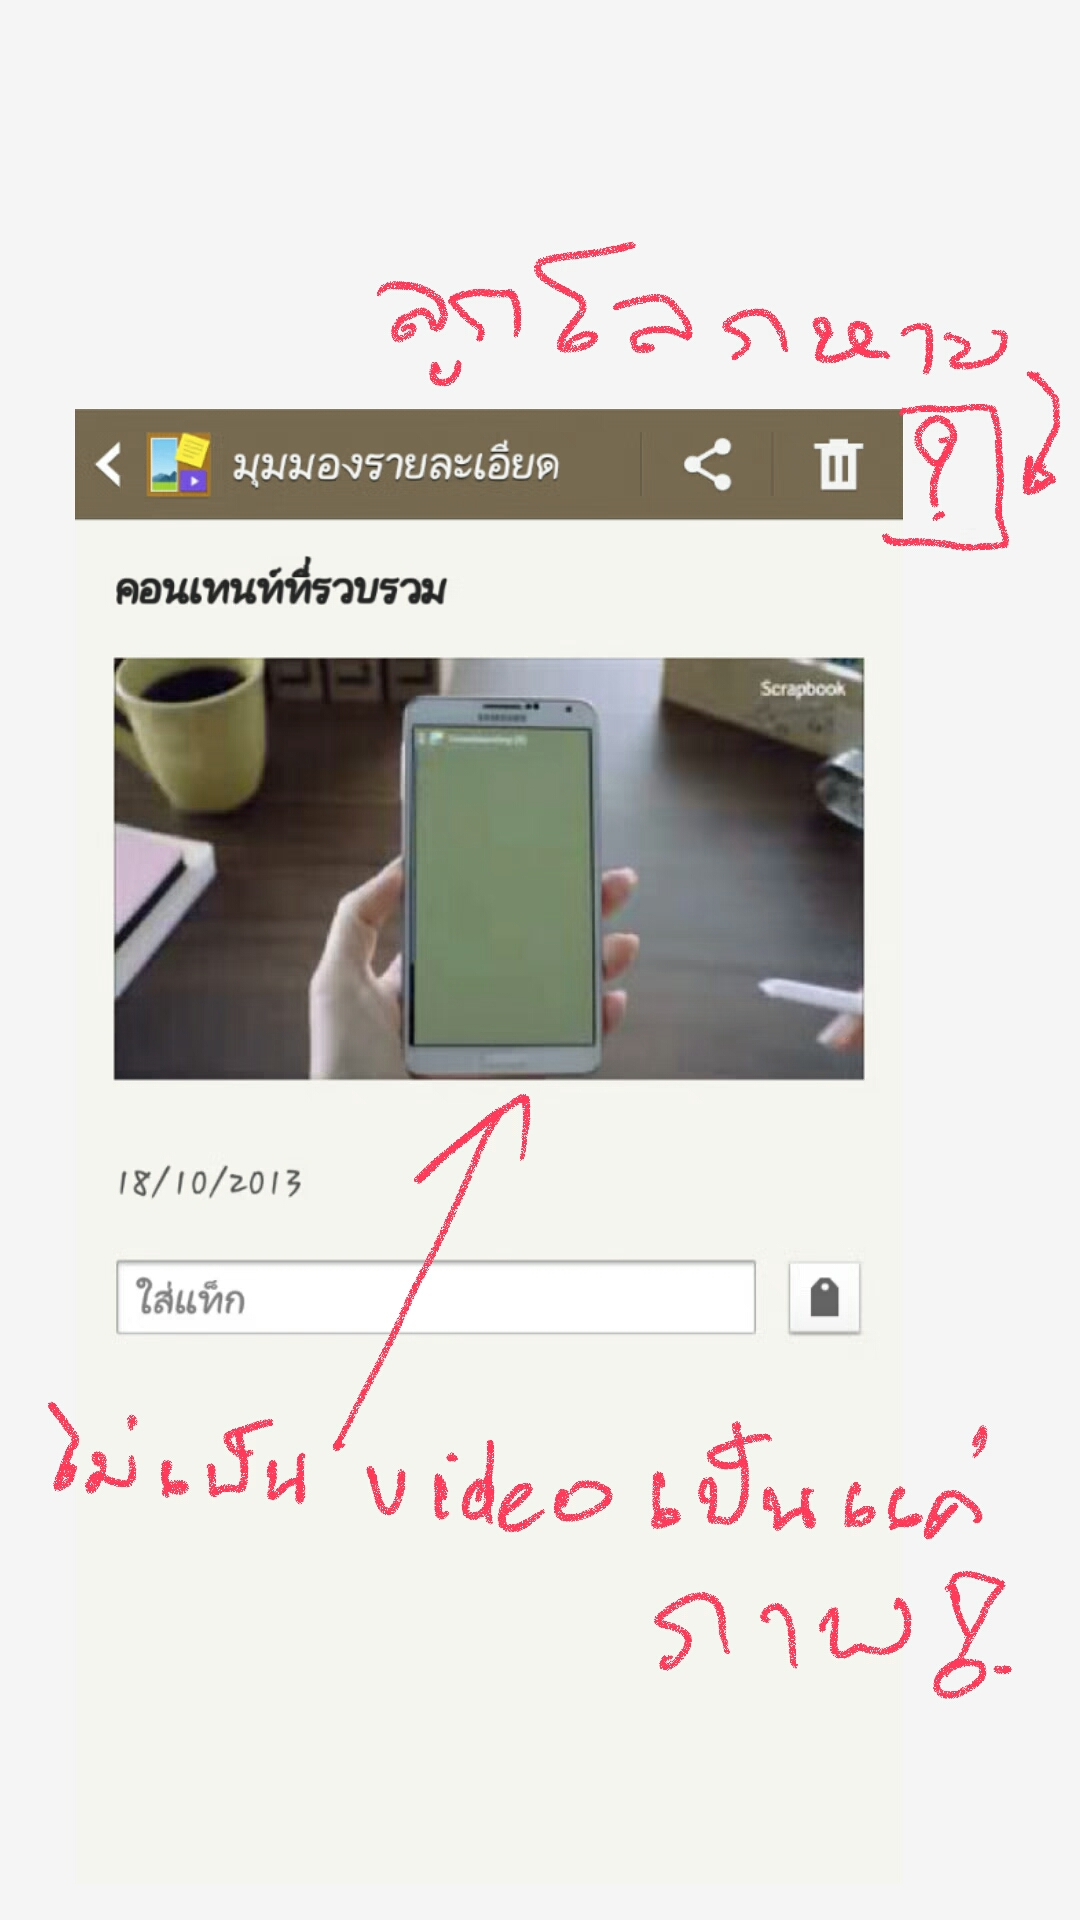 How to scrapbook youtube note 3 - How To Scrapbook Youtube Note 3 9